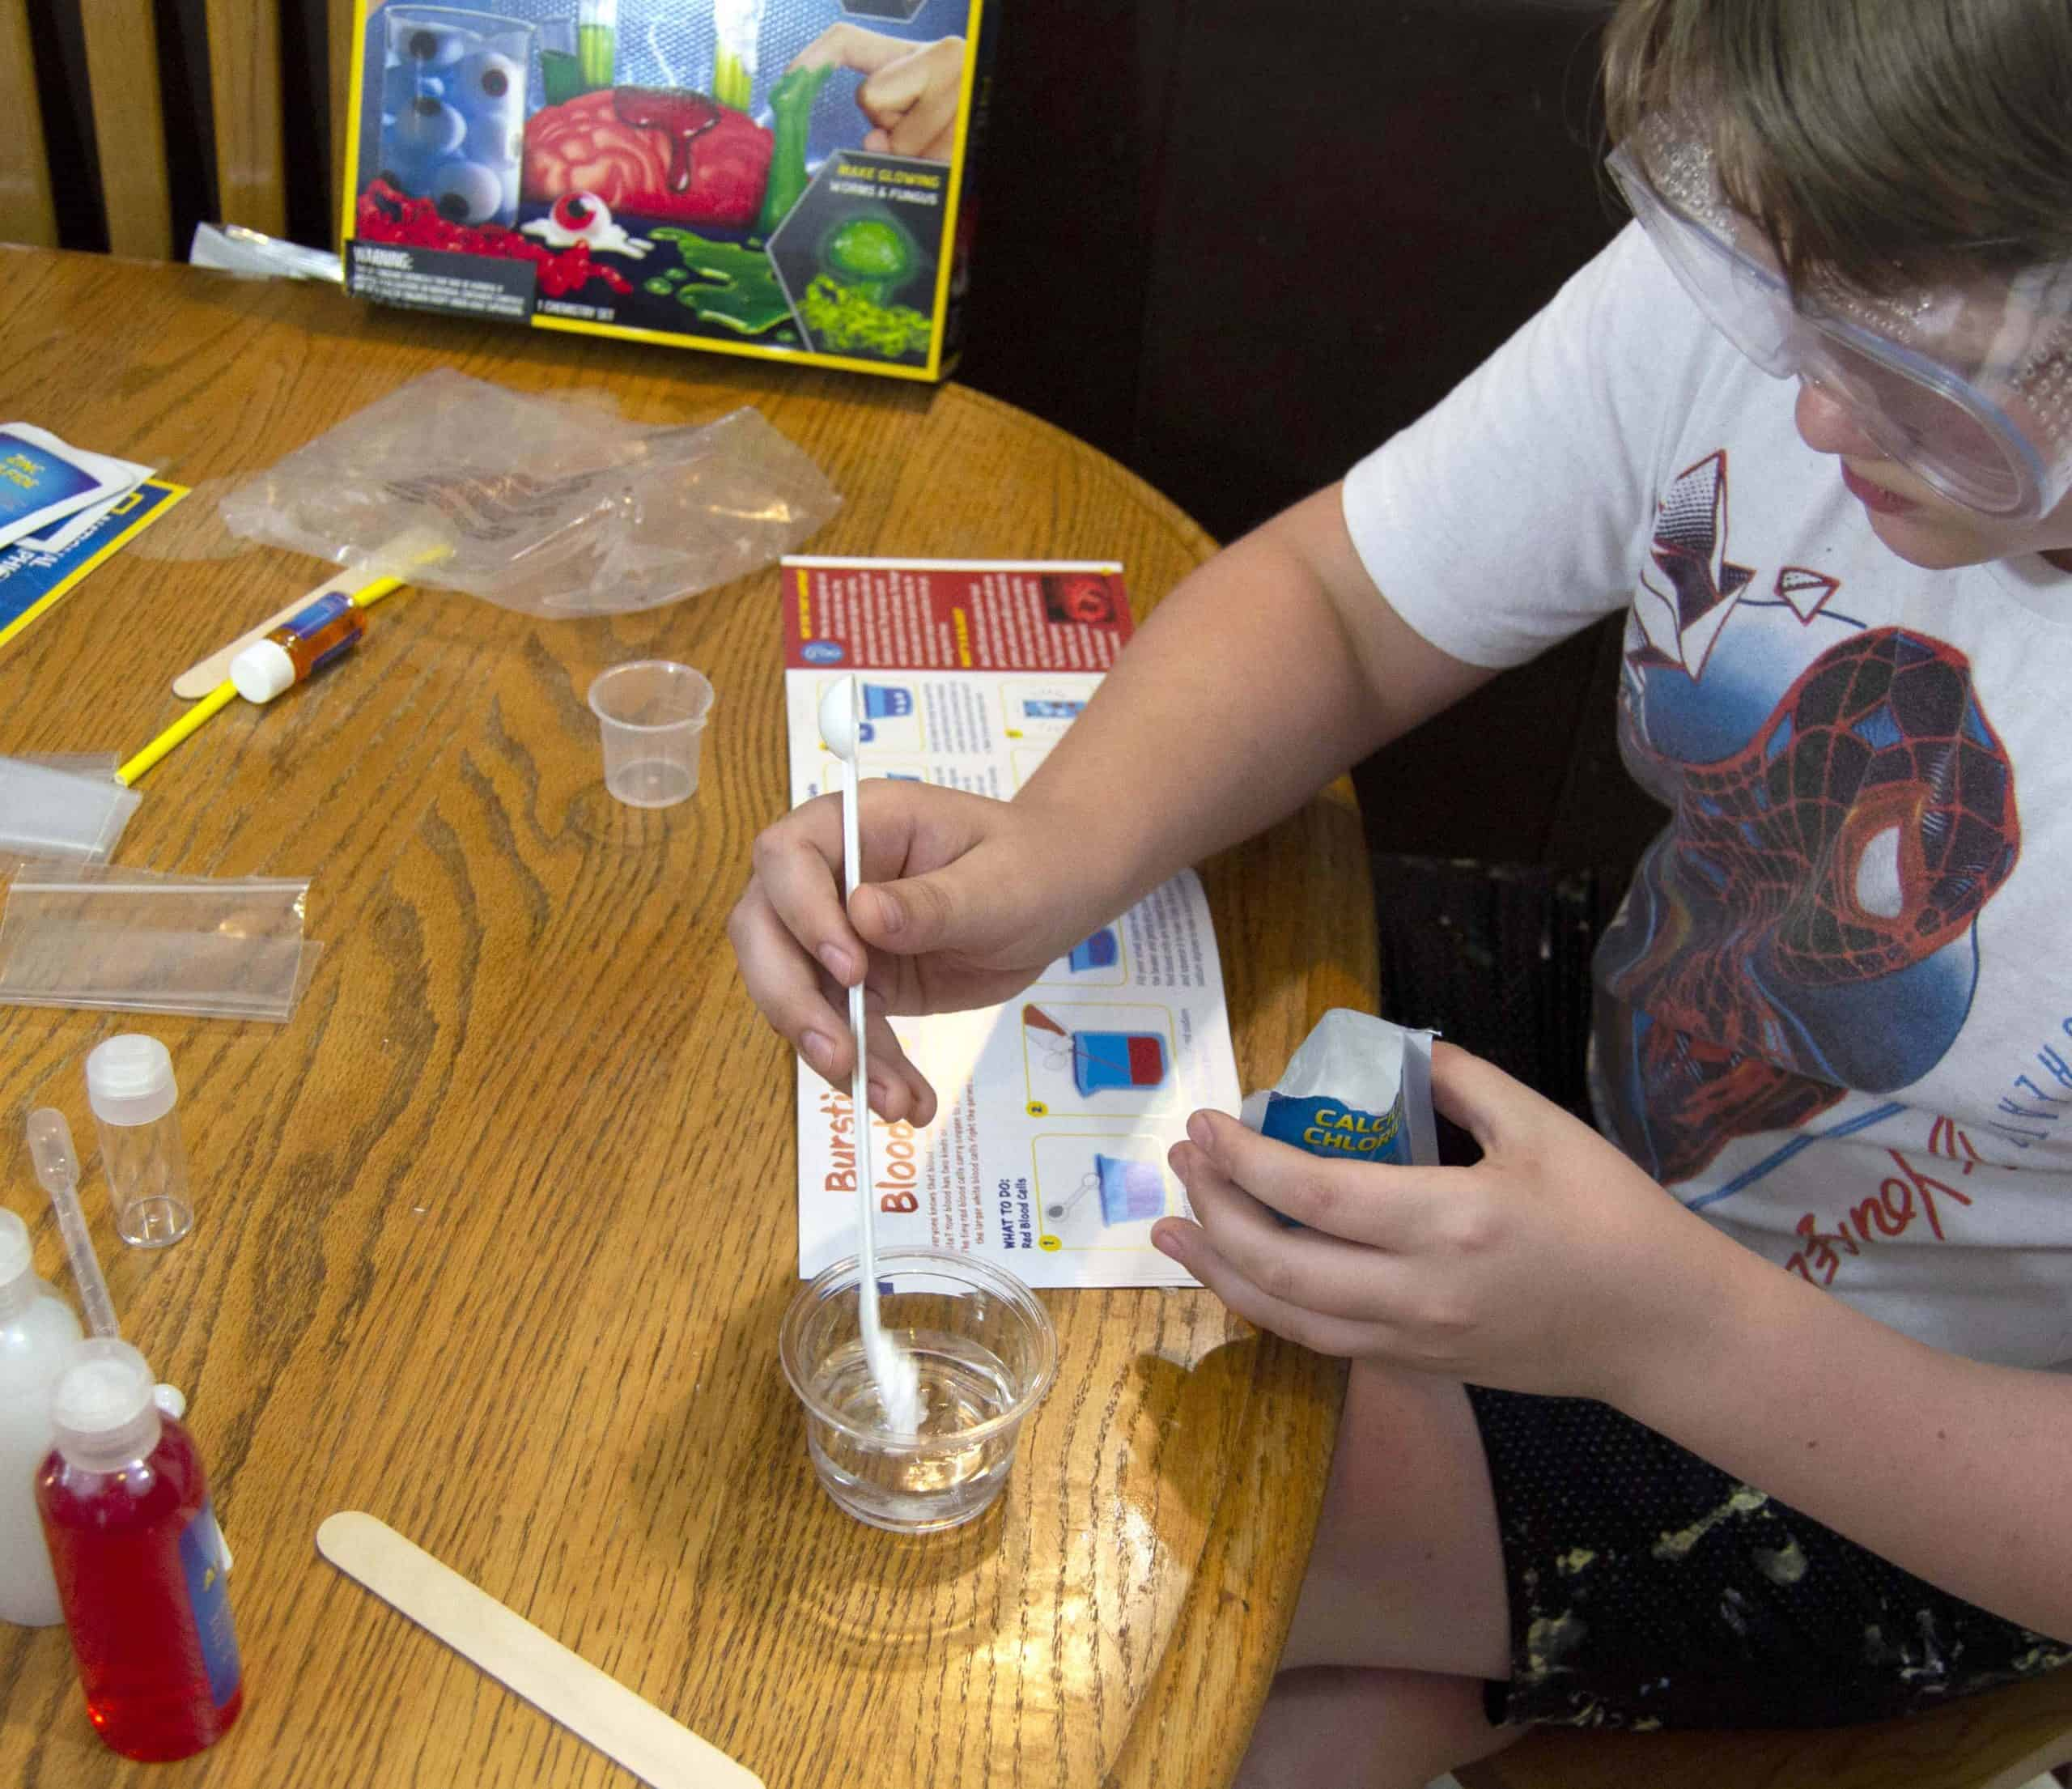 Boy doing science experiment using gross science kit